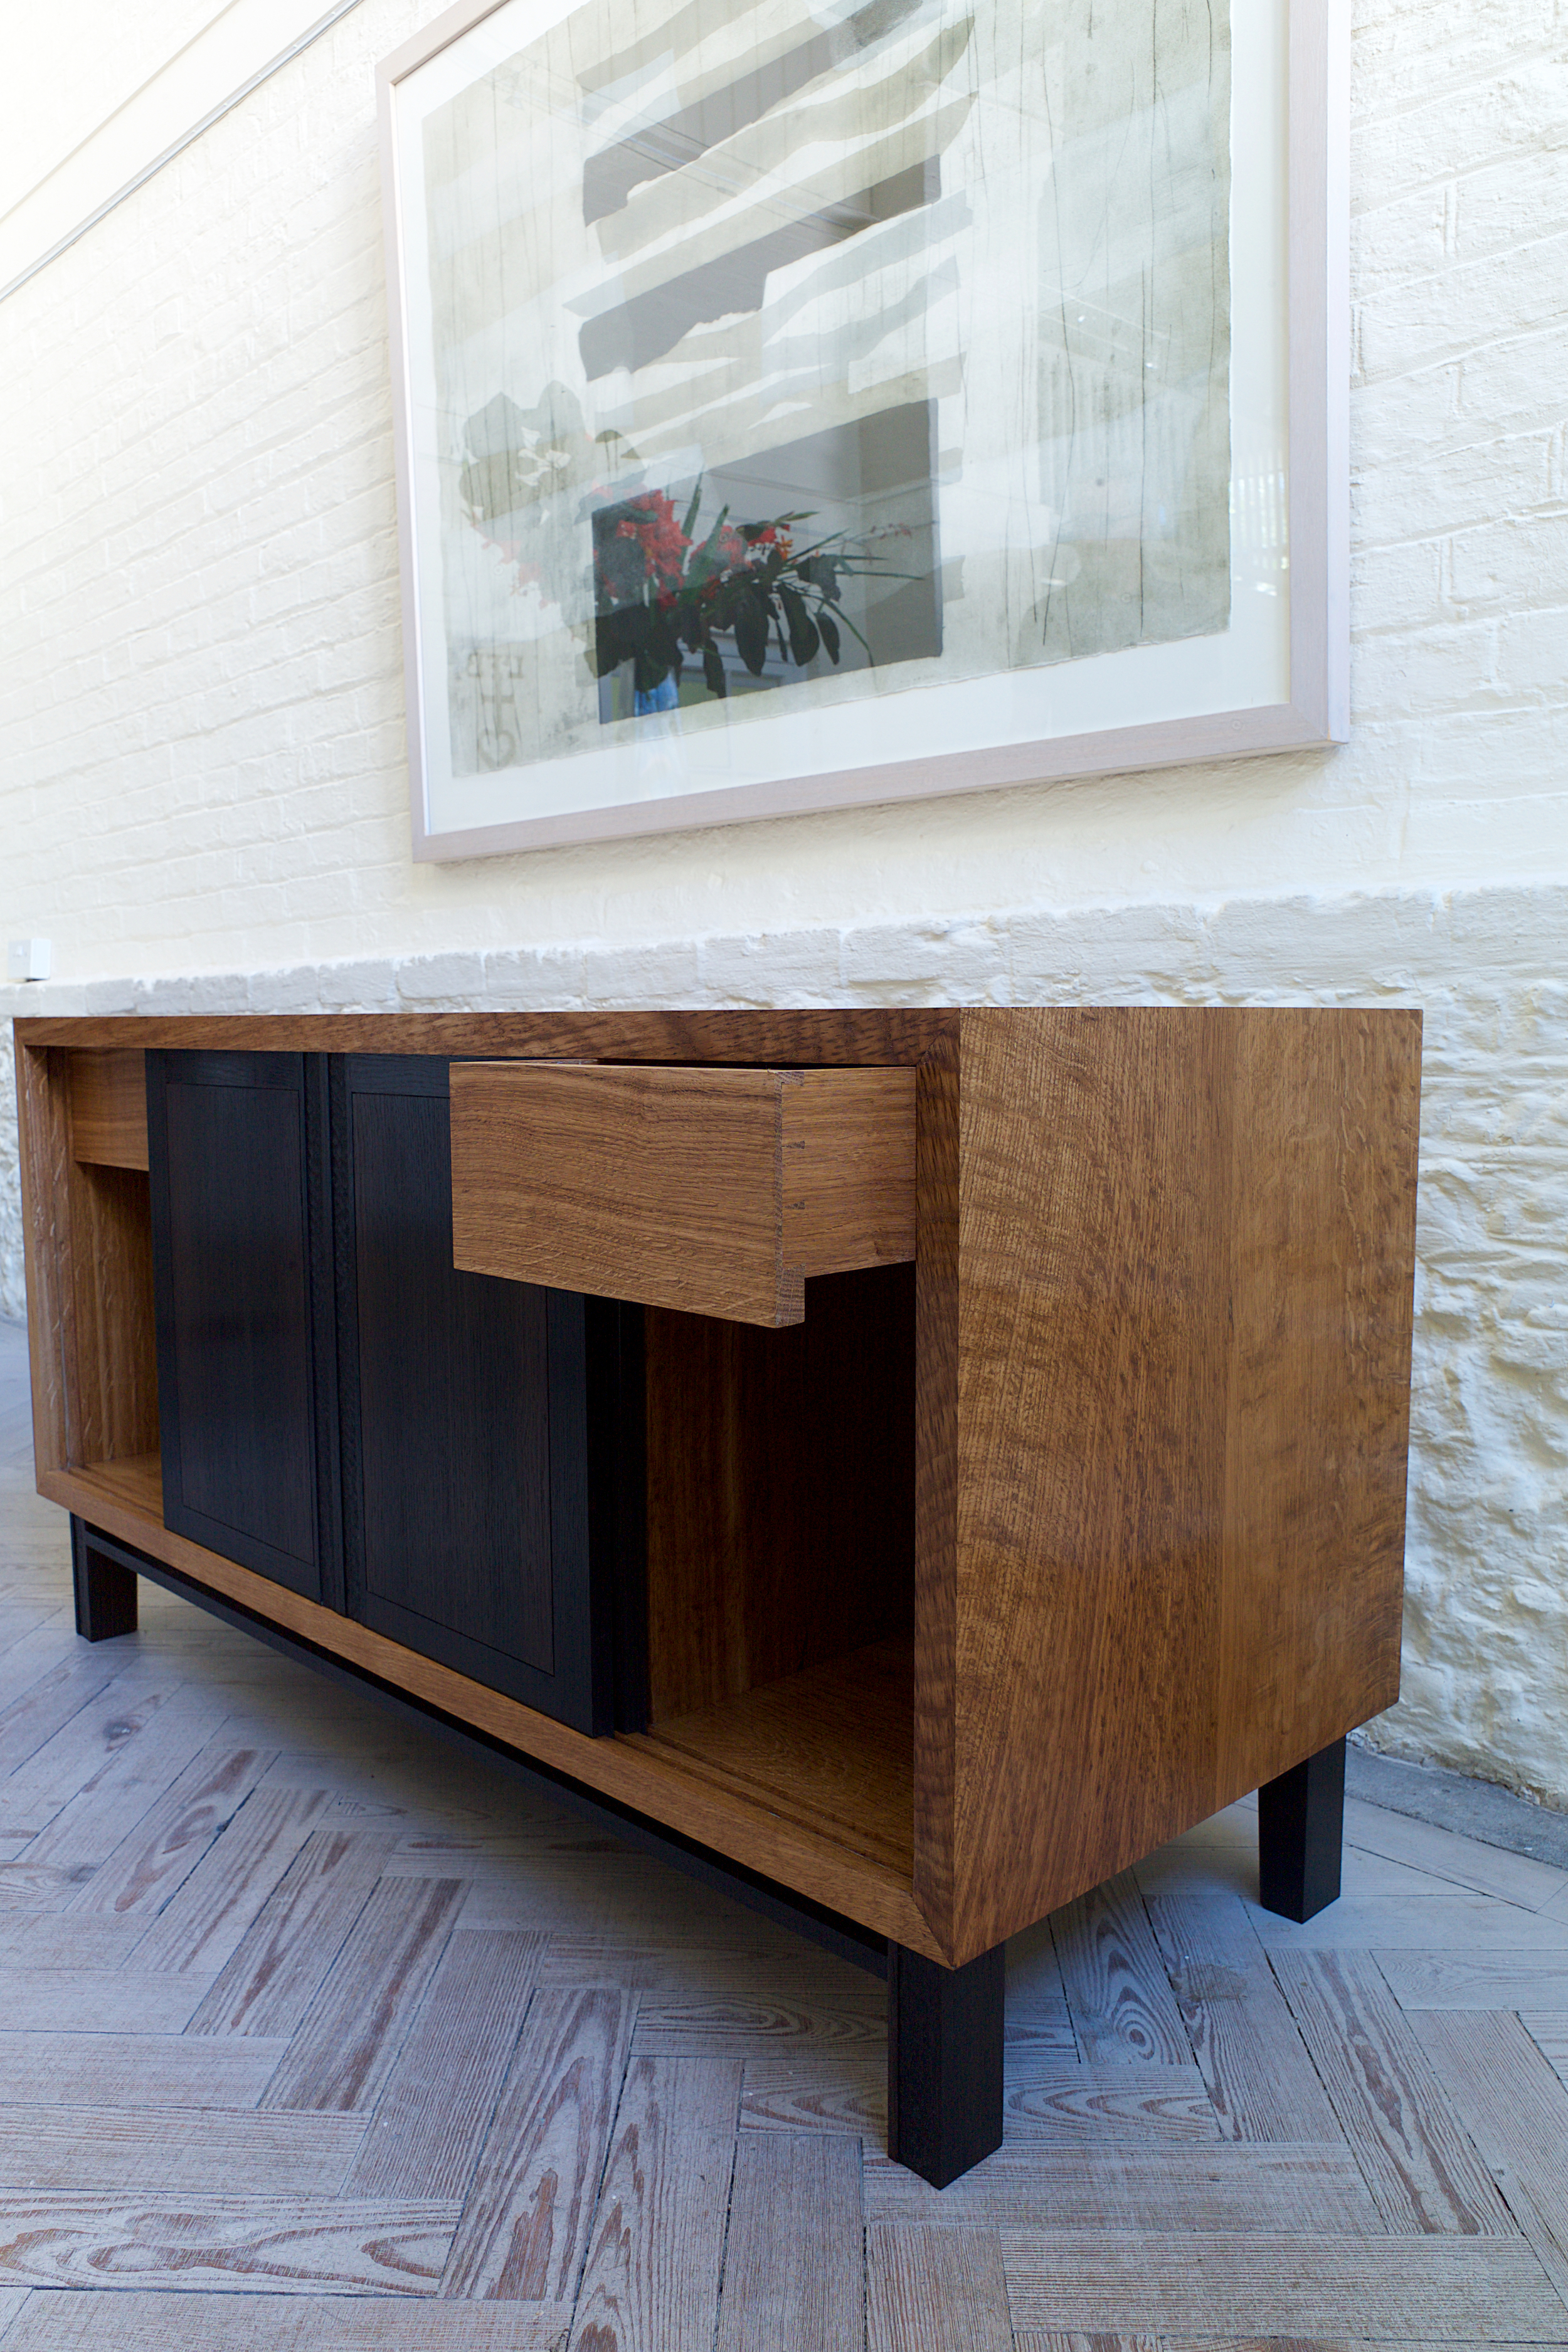 fine english brown oak cabinet with 4,000 year old bog oak from the Cambridgeshire fens